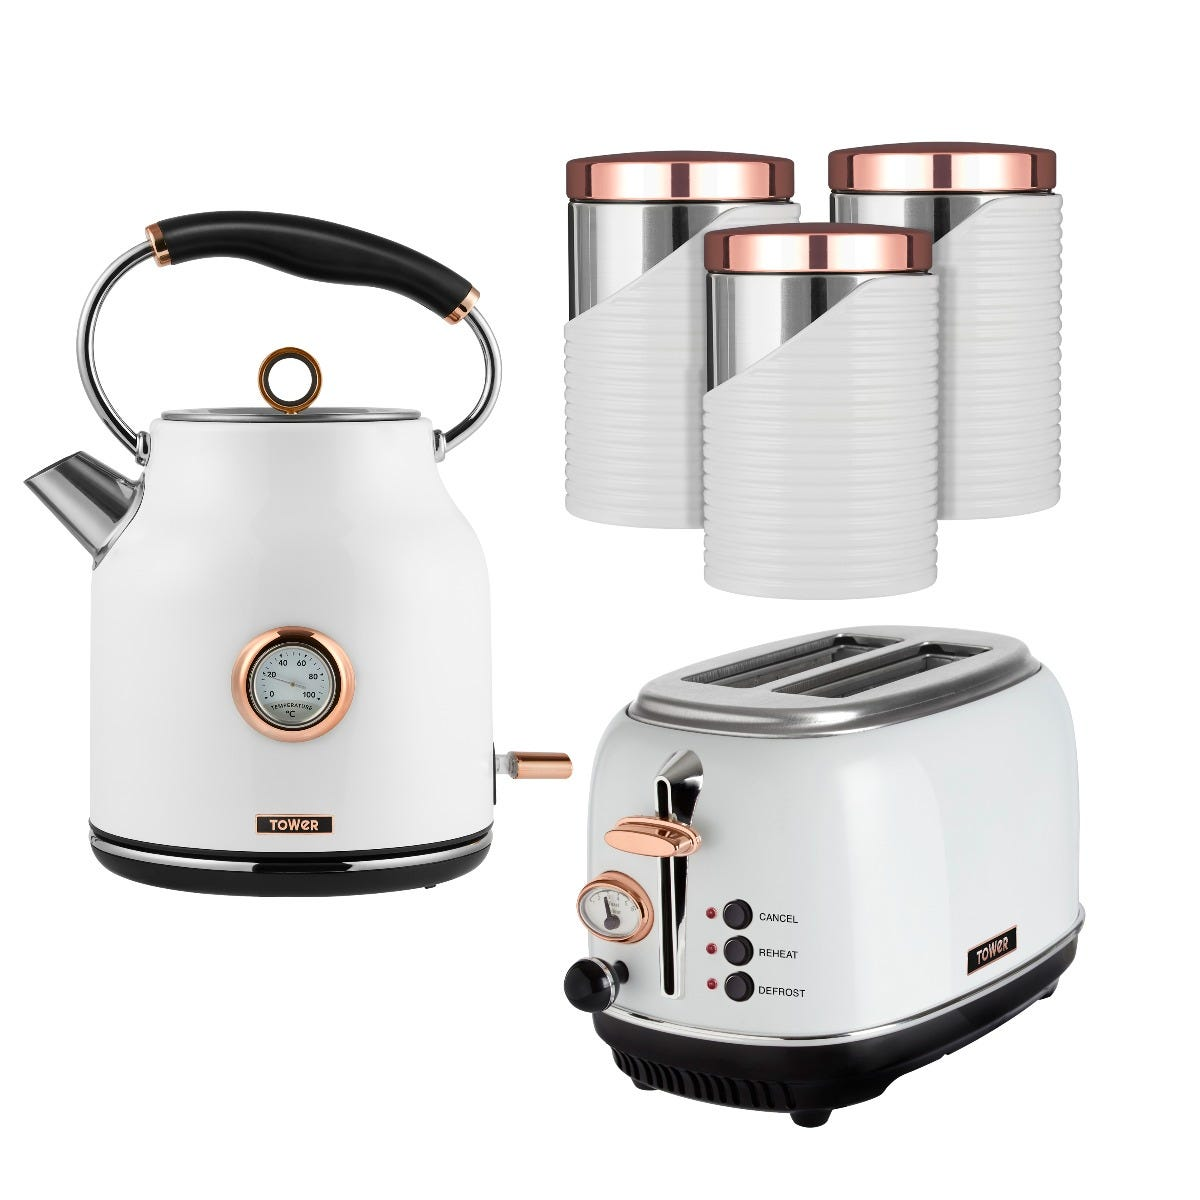 Tower 1.7L Traditional Kettle and 2 Slice Toaster Set with 3 Canisters - White and Rose Gold